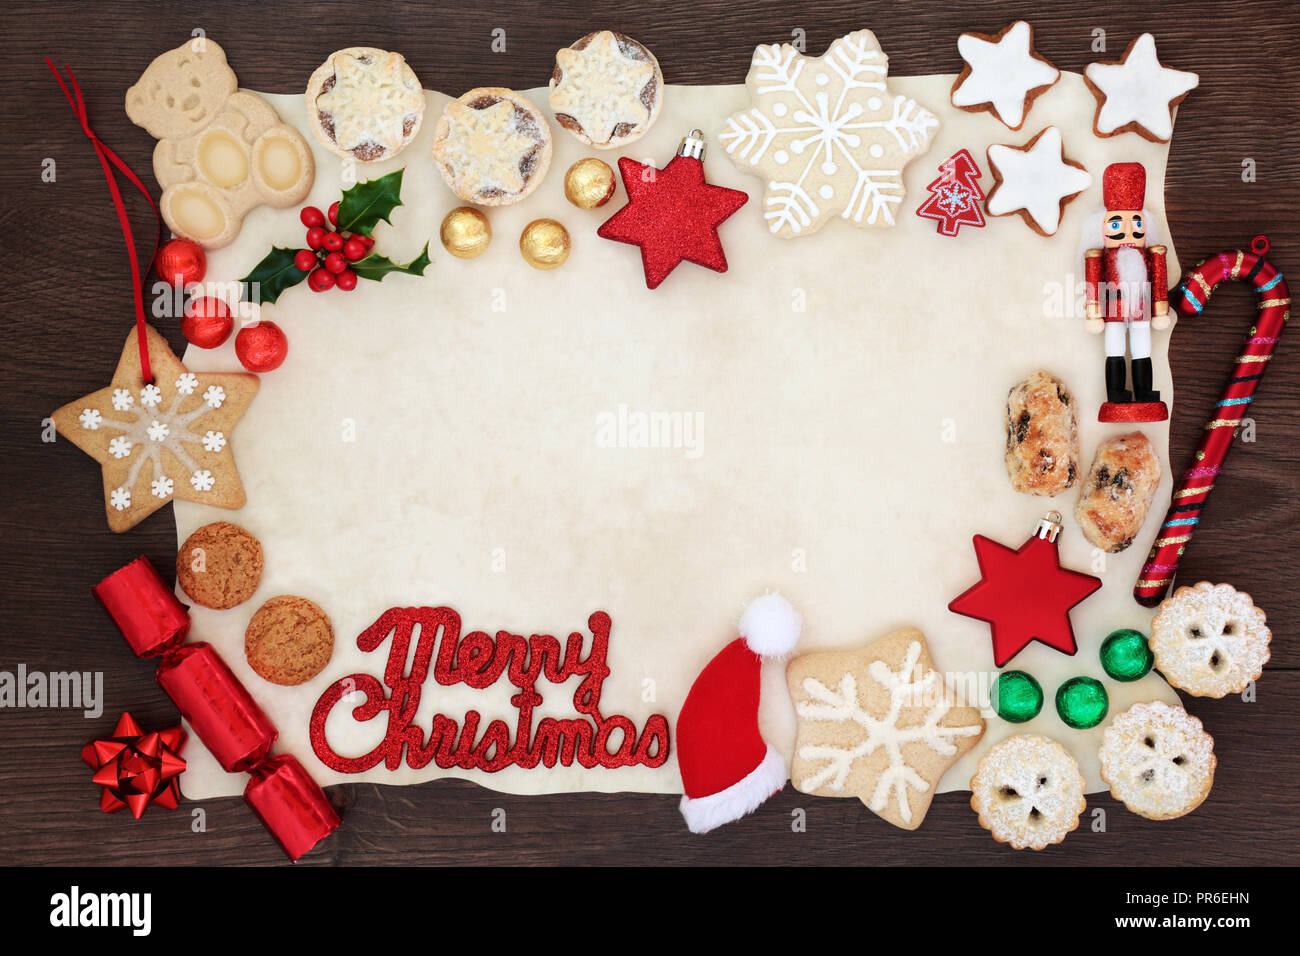 Merry Christmas background frontera con signo, decoraciones para árboles, galletas, pasteles, invierno flora y chocolates en láminas sobre papel pergamino en madera rústica Imagen De Stock